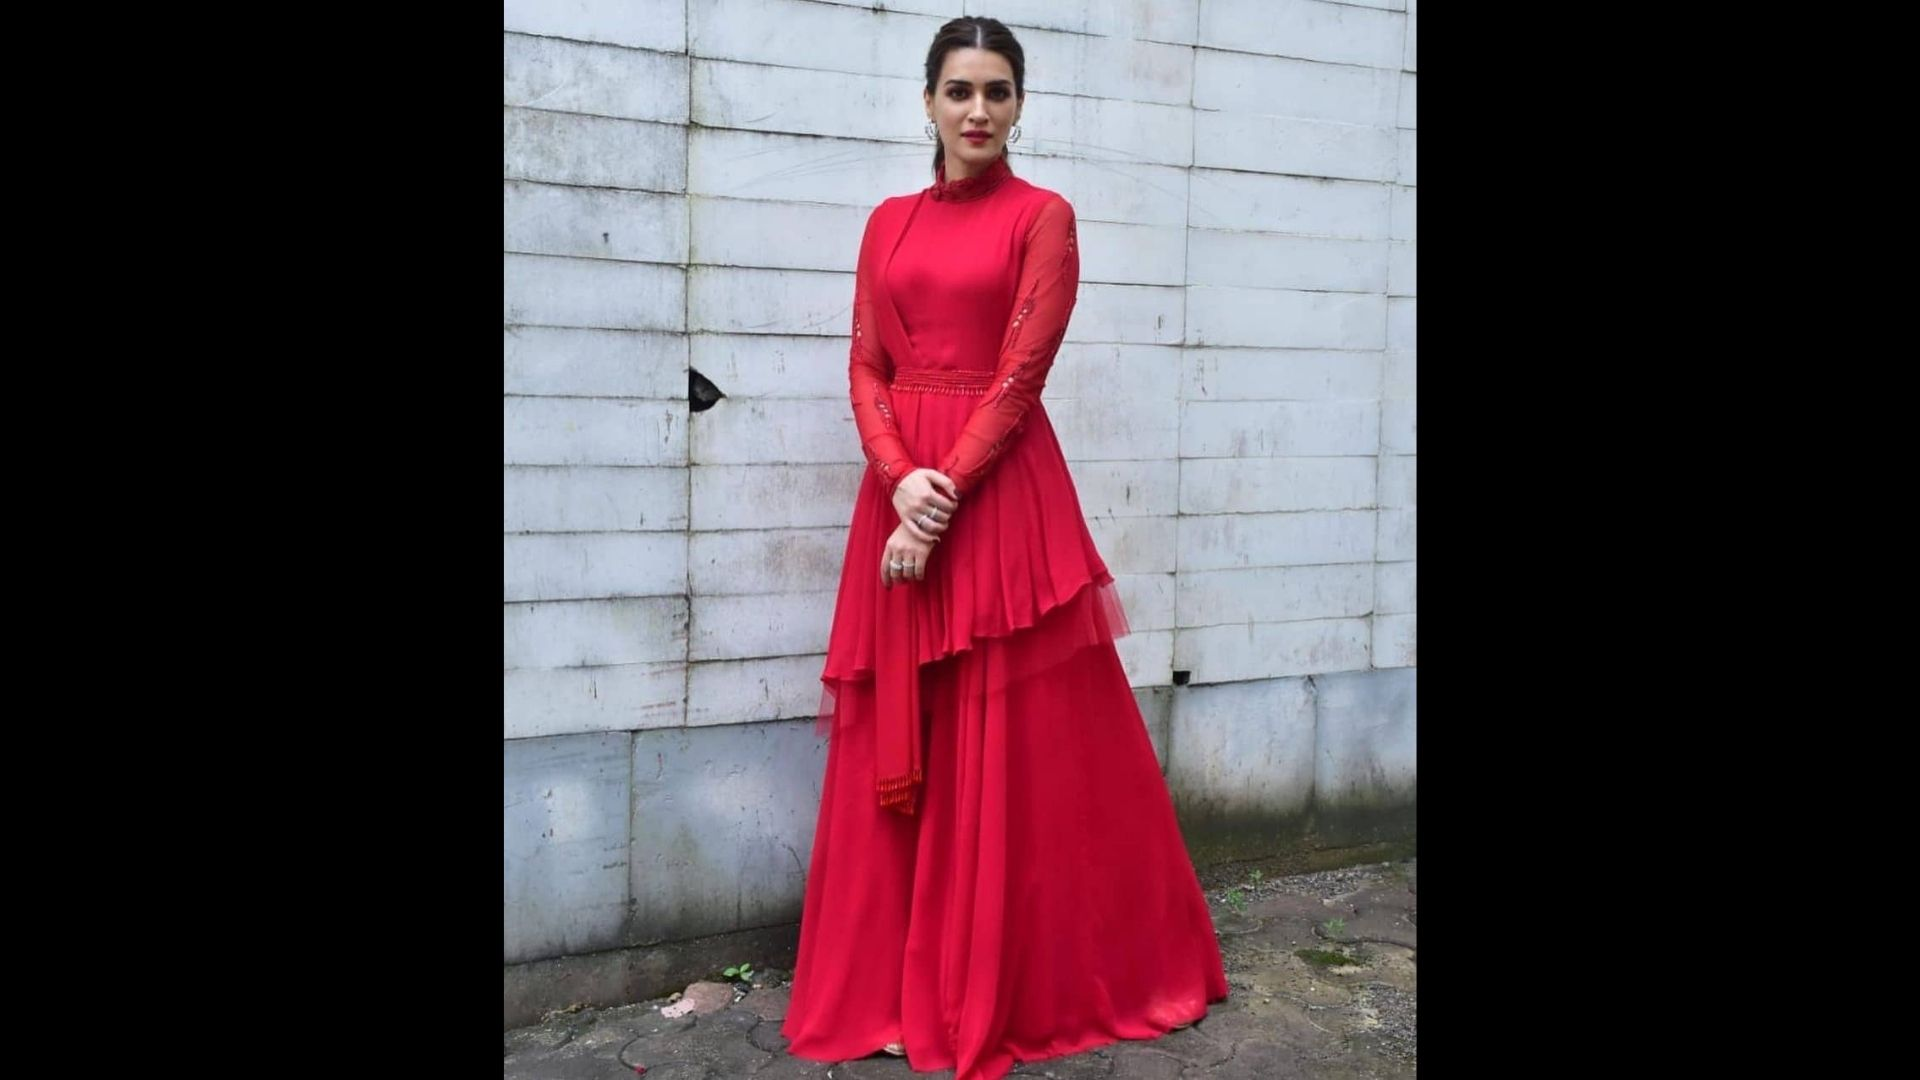 Kriti Sanon Looks Drop-Dead Gorgeous In Her Red Floral Maxi Dress; Actress Will Make You Fall In Love With Her Stunning Looks